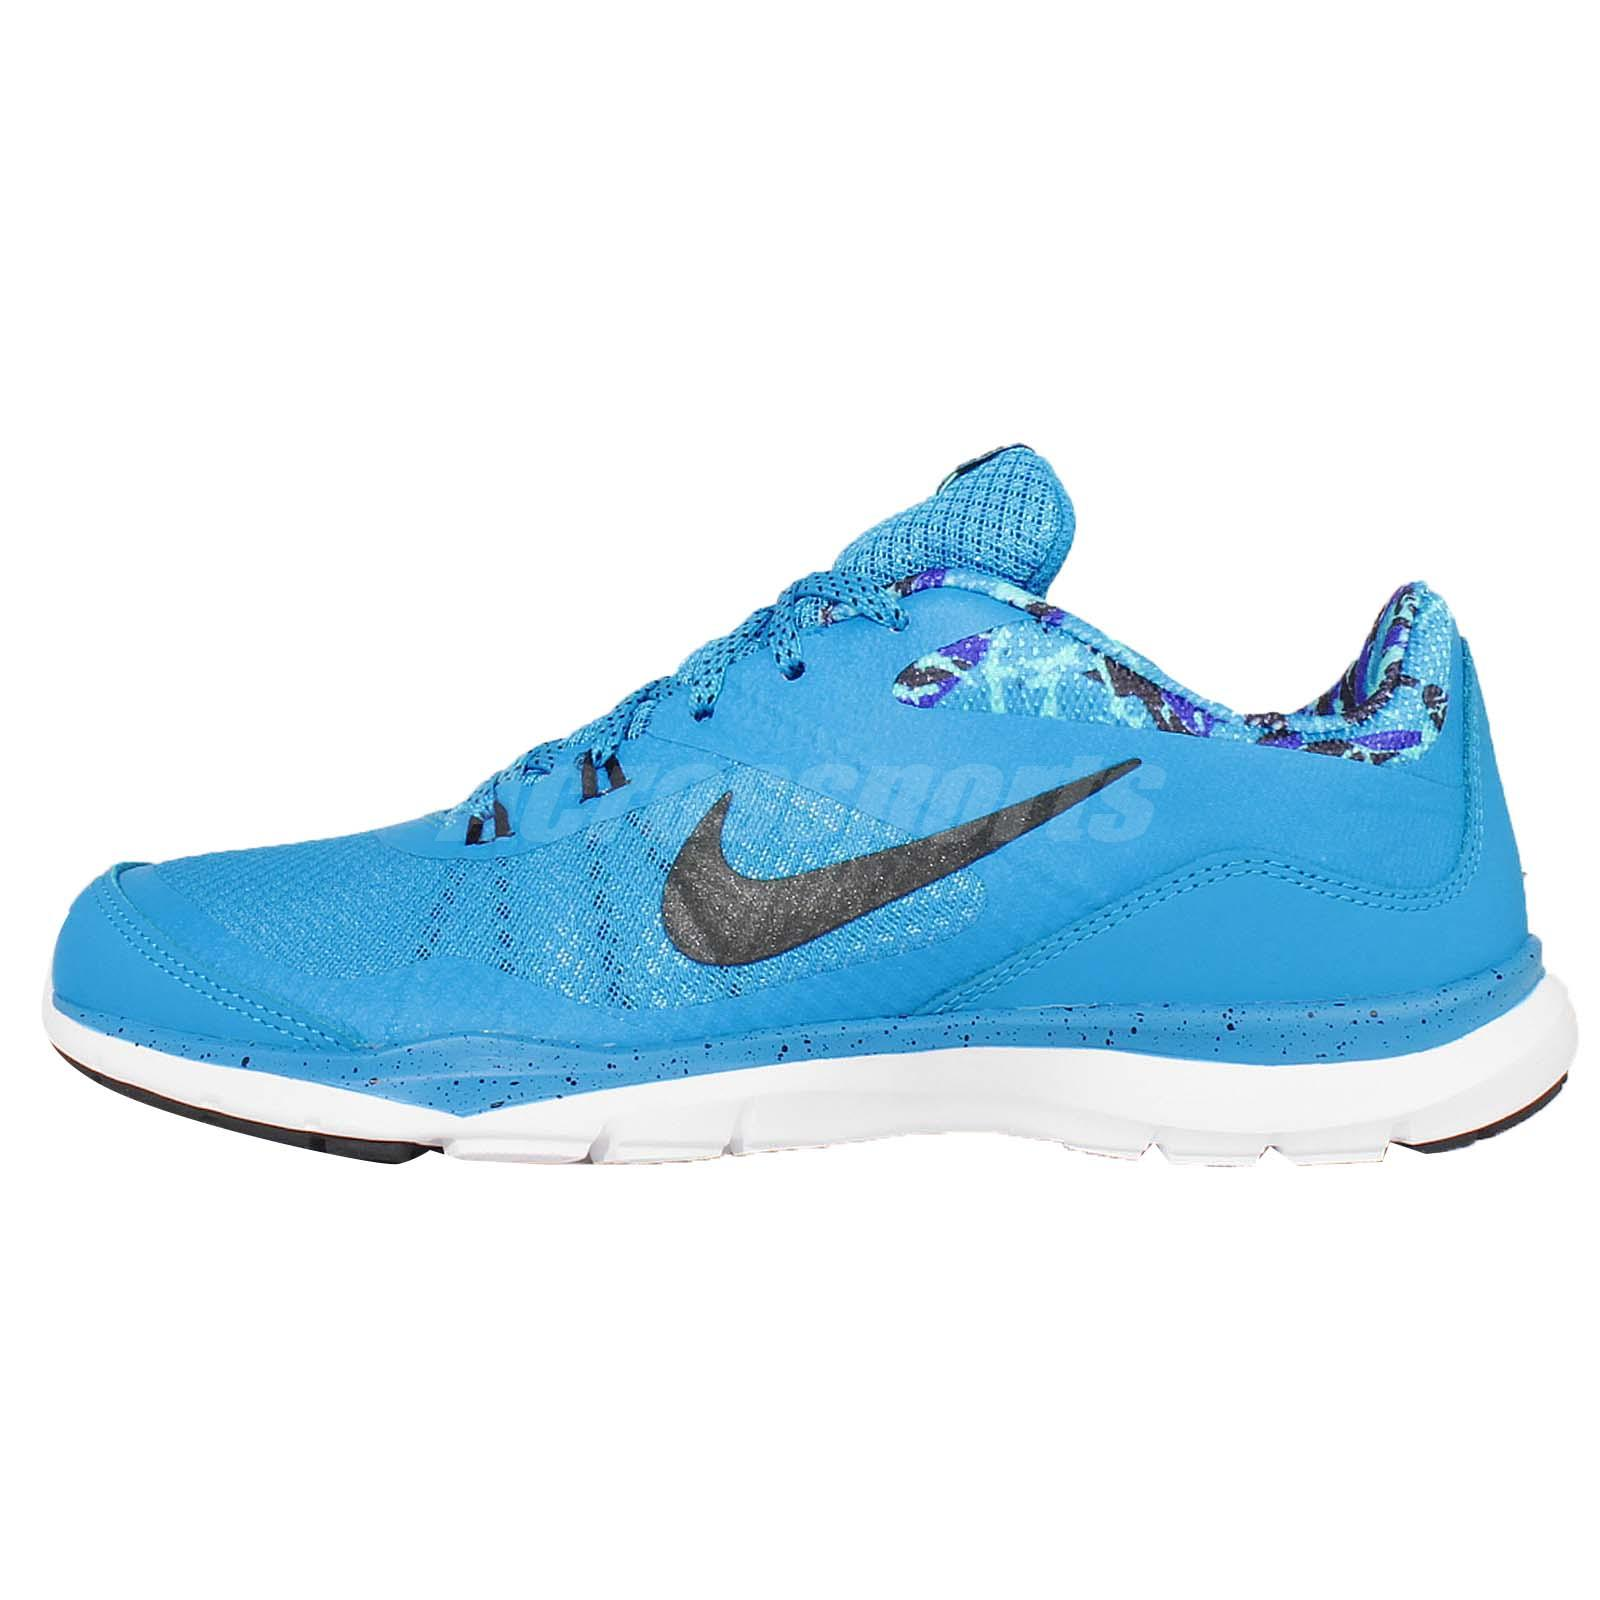 Nike Personal Trainer Shoes